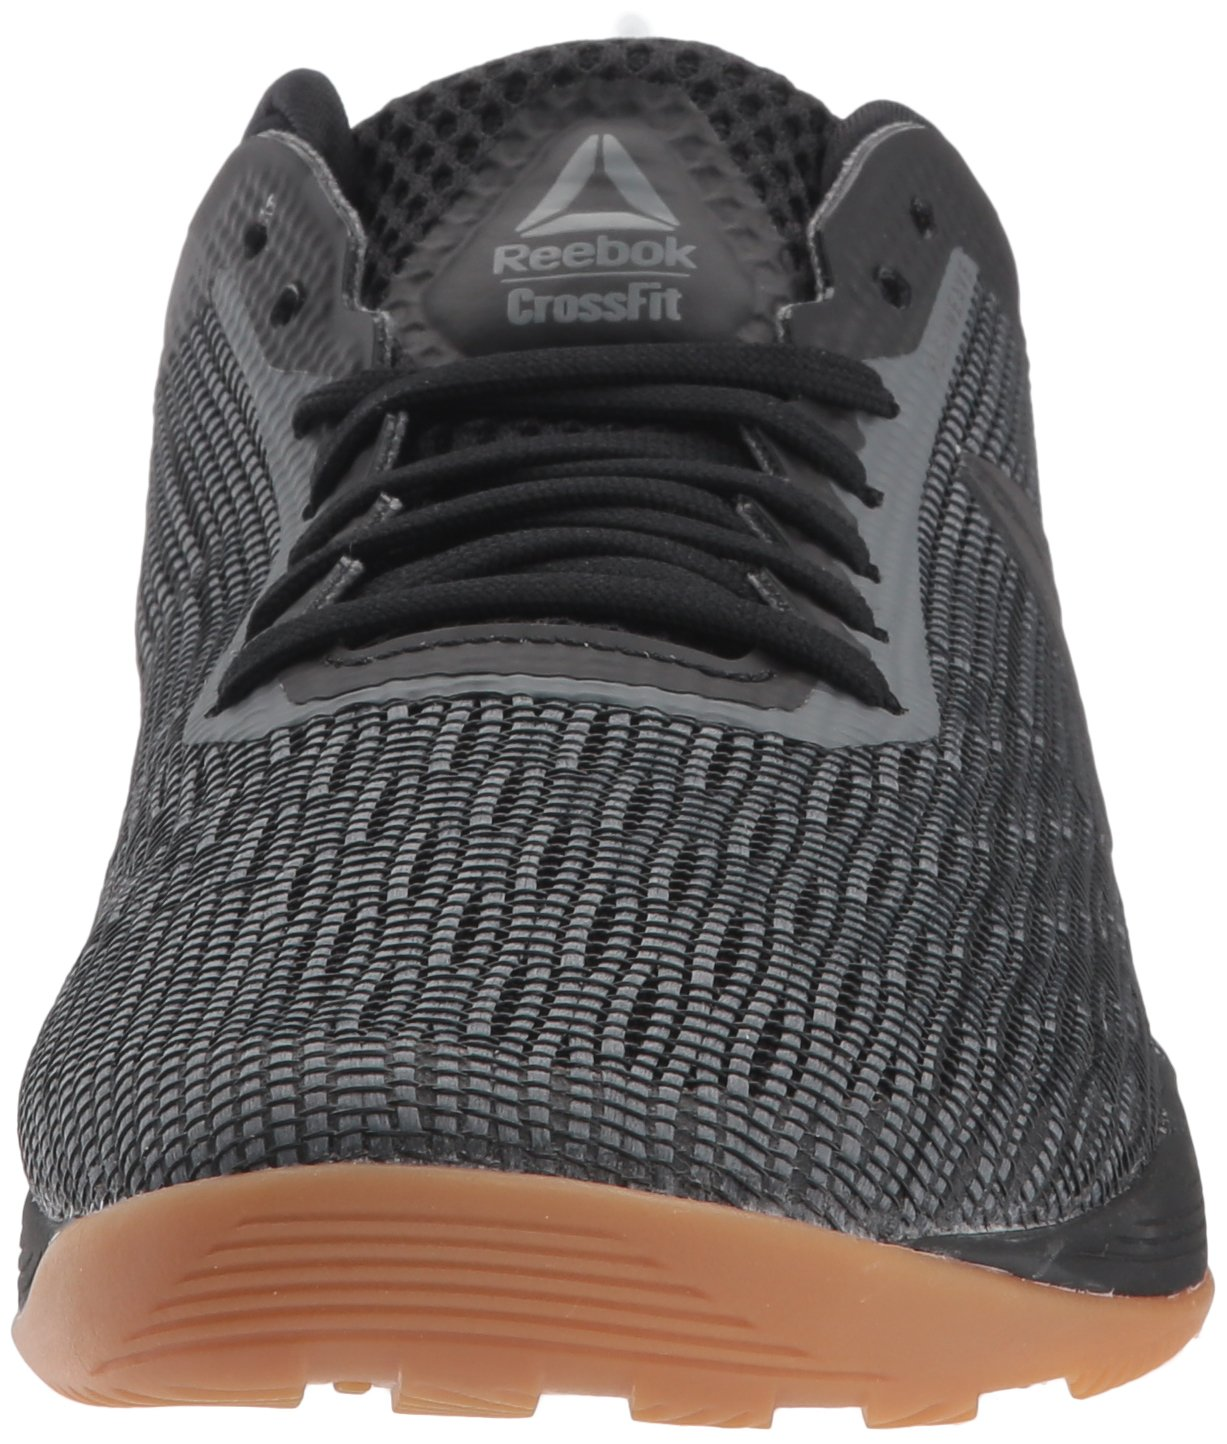 Reebok Women's Crossfit Nano 8.0 Flexweave Cross Trainer B073XJN5TL 7 B(M) US|Black/Alloy/Gum